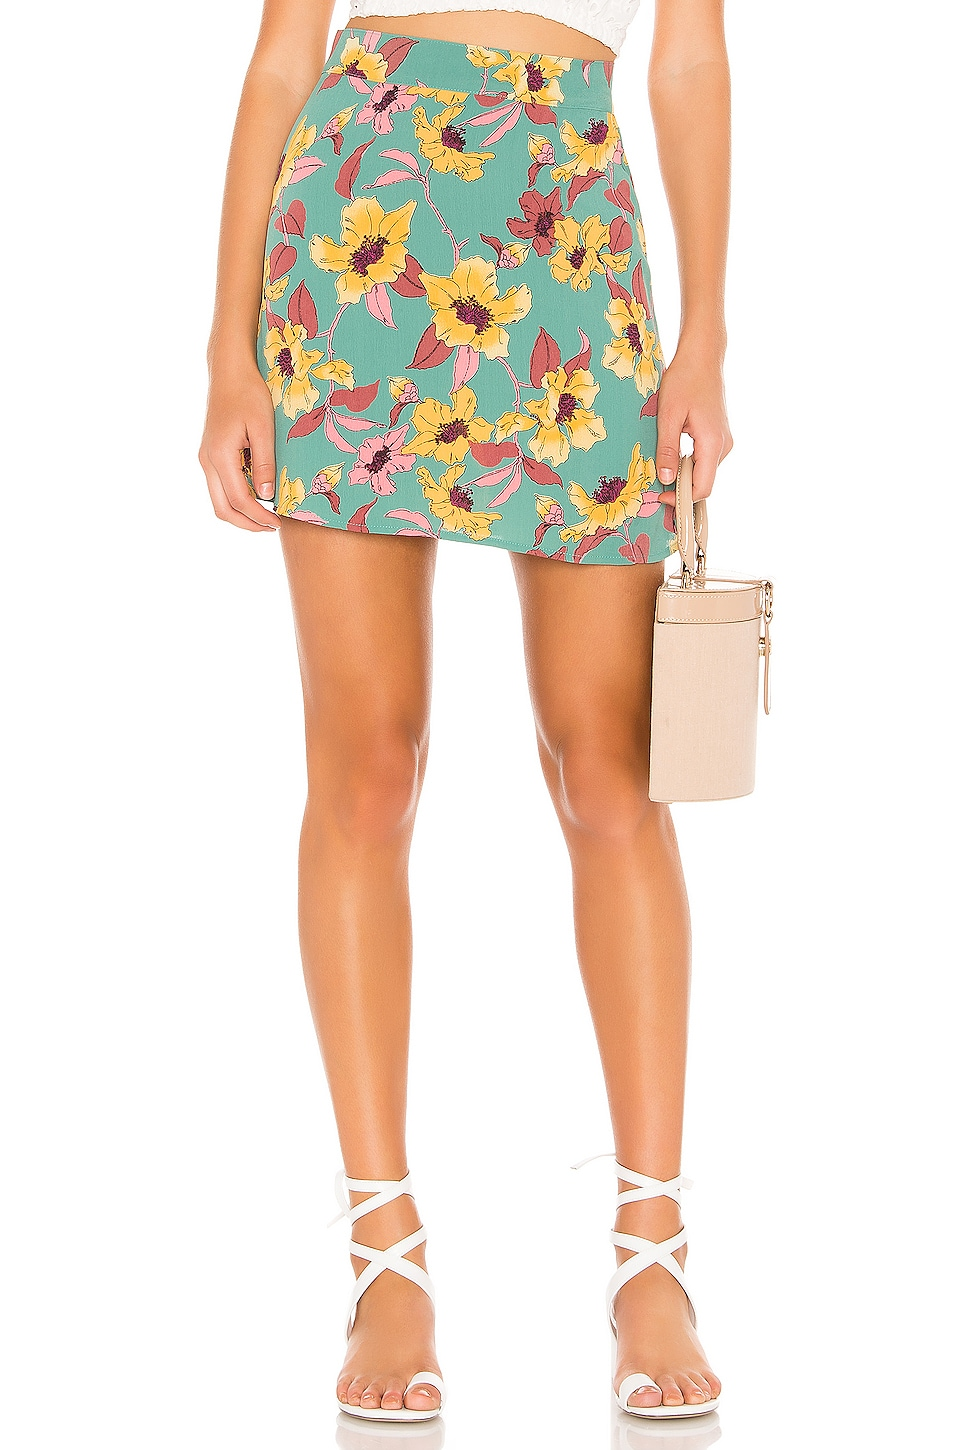 FLYNN SKYE It Skirt in Twilight Walk